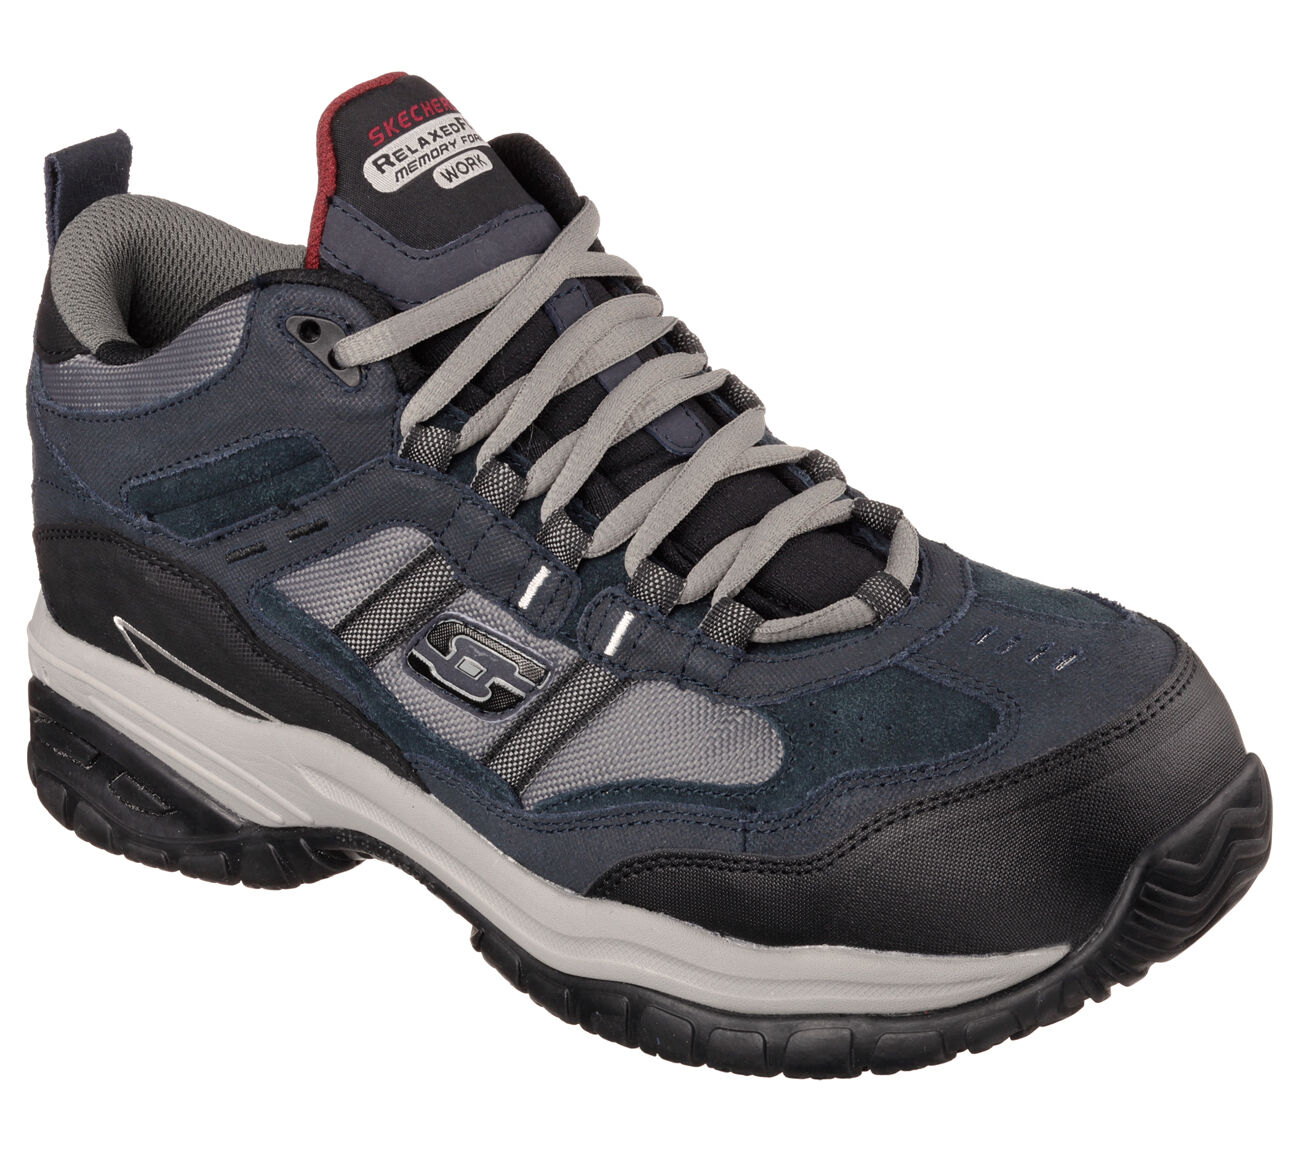 Men's SKECHERS WORK  RELAXED FIT Soft Stride - Canopy Com, 77027 NVGY Sizes 8-14